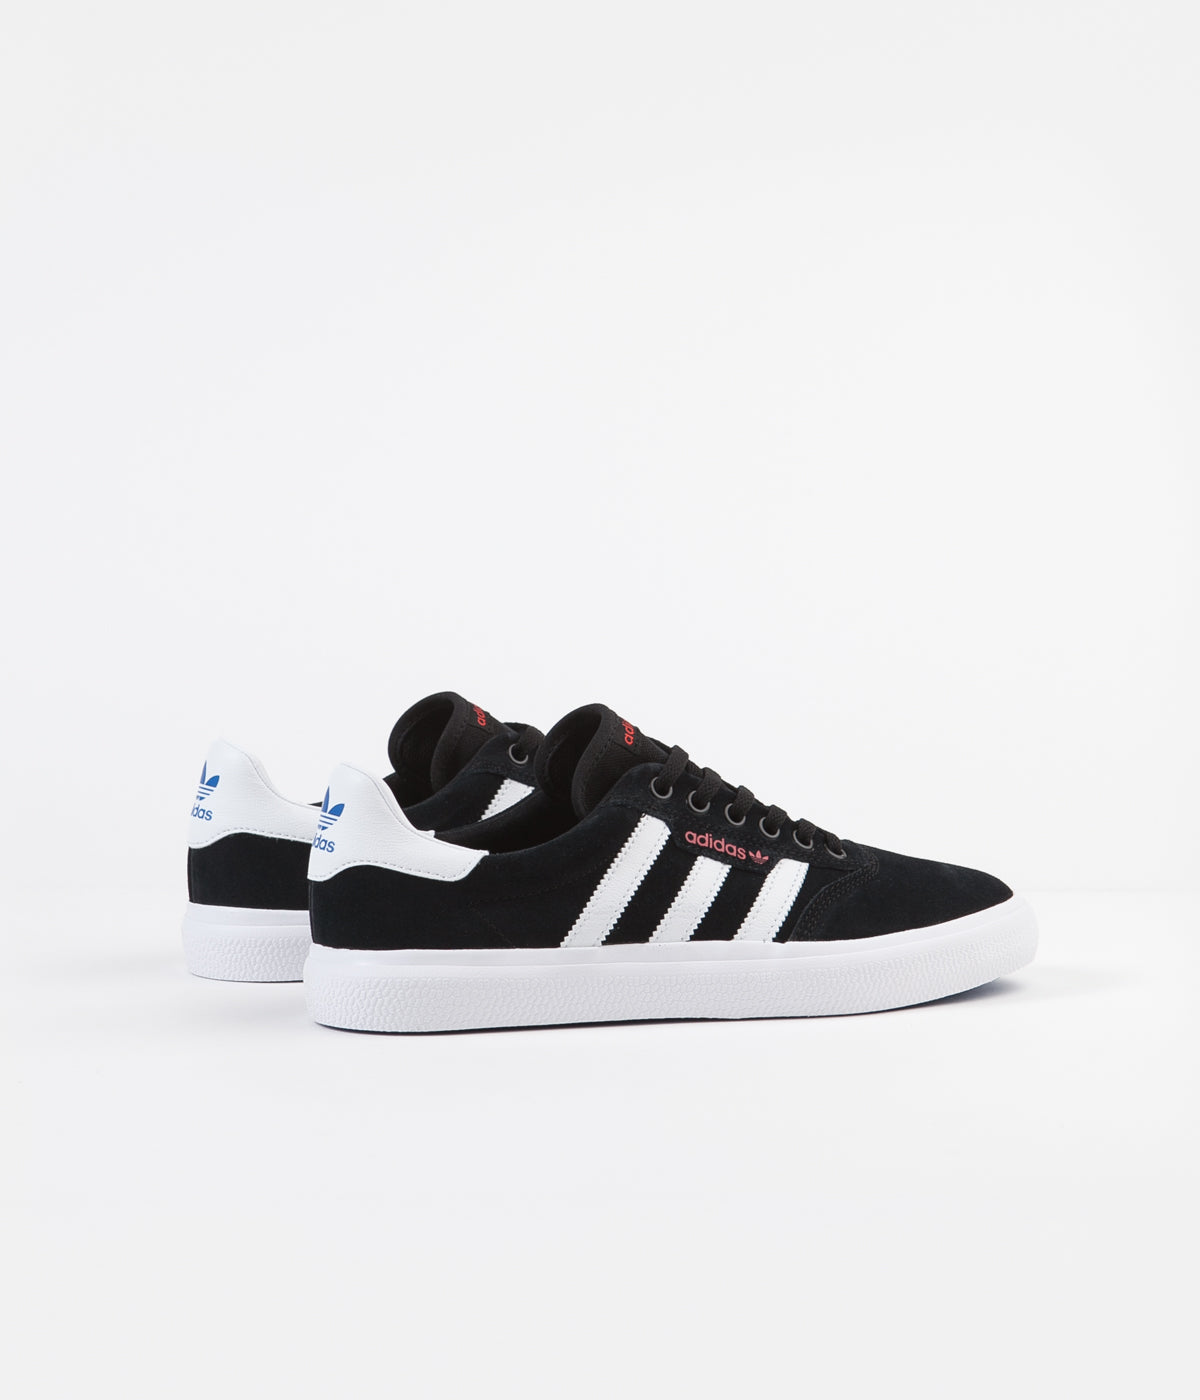 Adidas 3MC Shoes - Black / White / Red